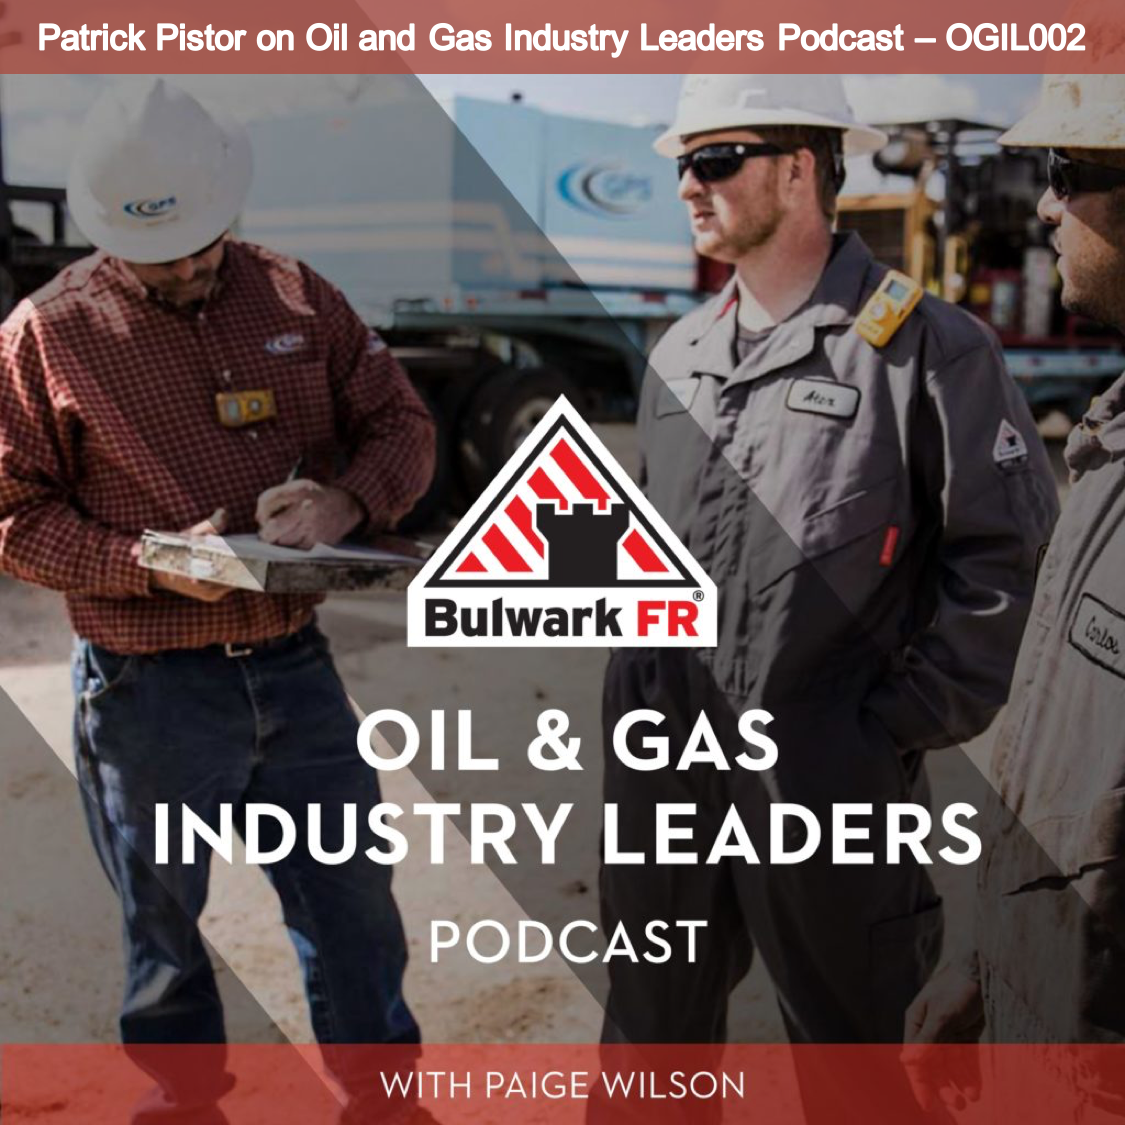 Oil and Gas Industry Leaders Podcast